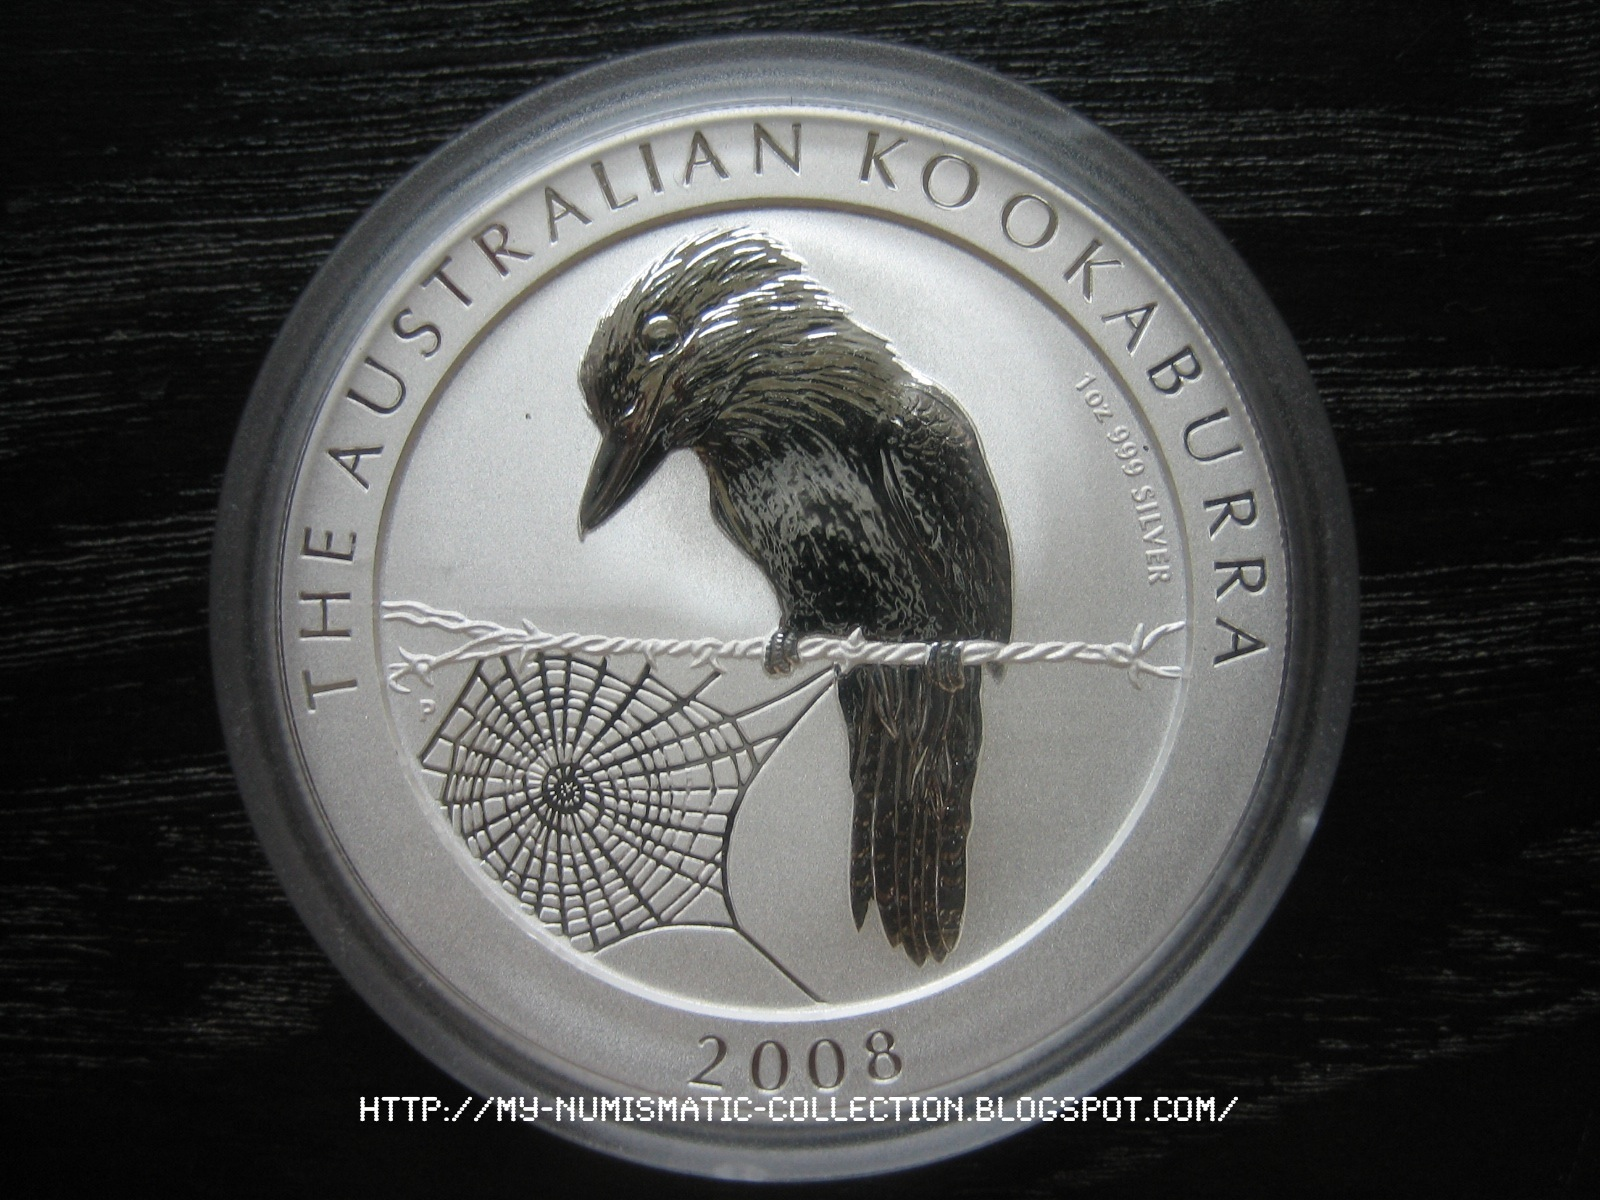 Numismatic Collection 2008 Australian Silver Kookaburra